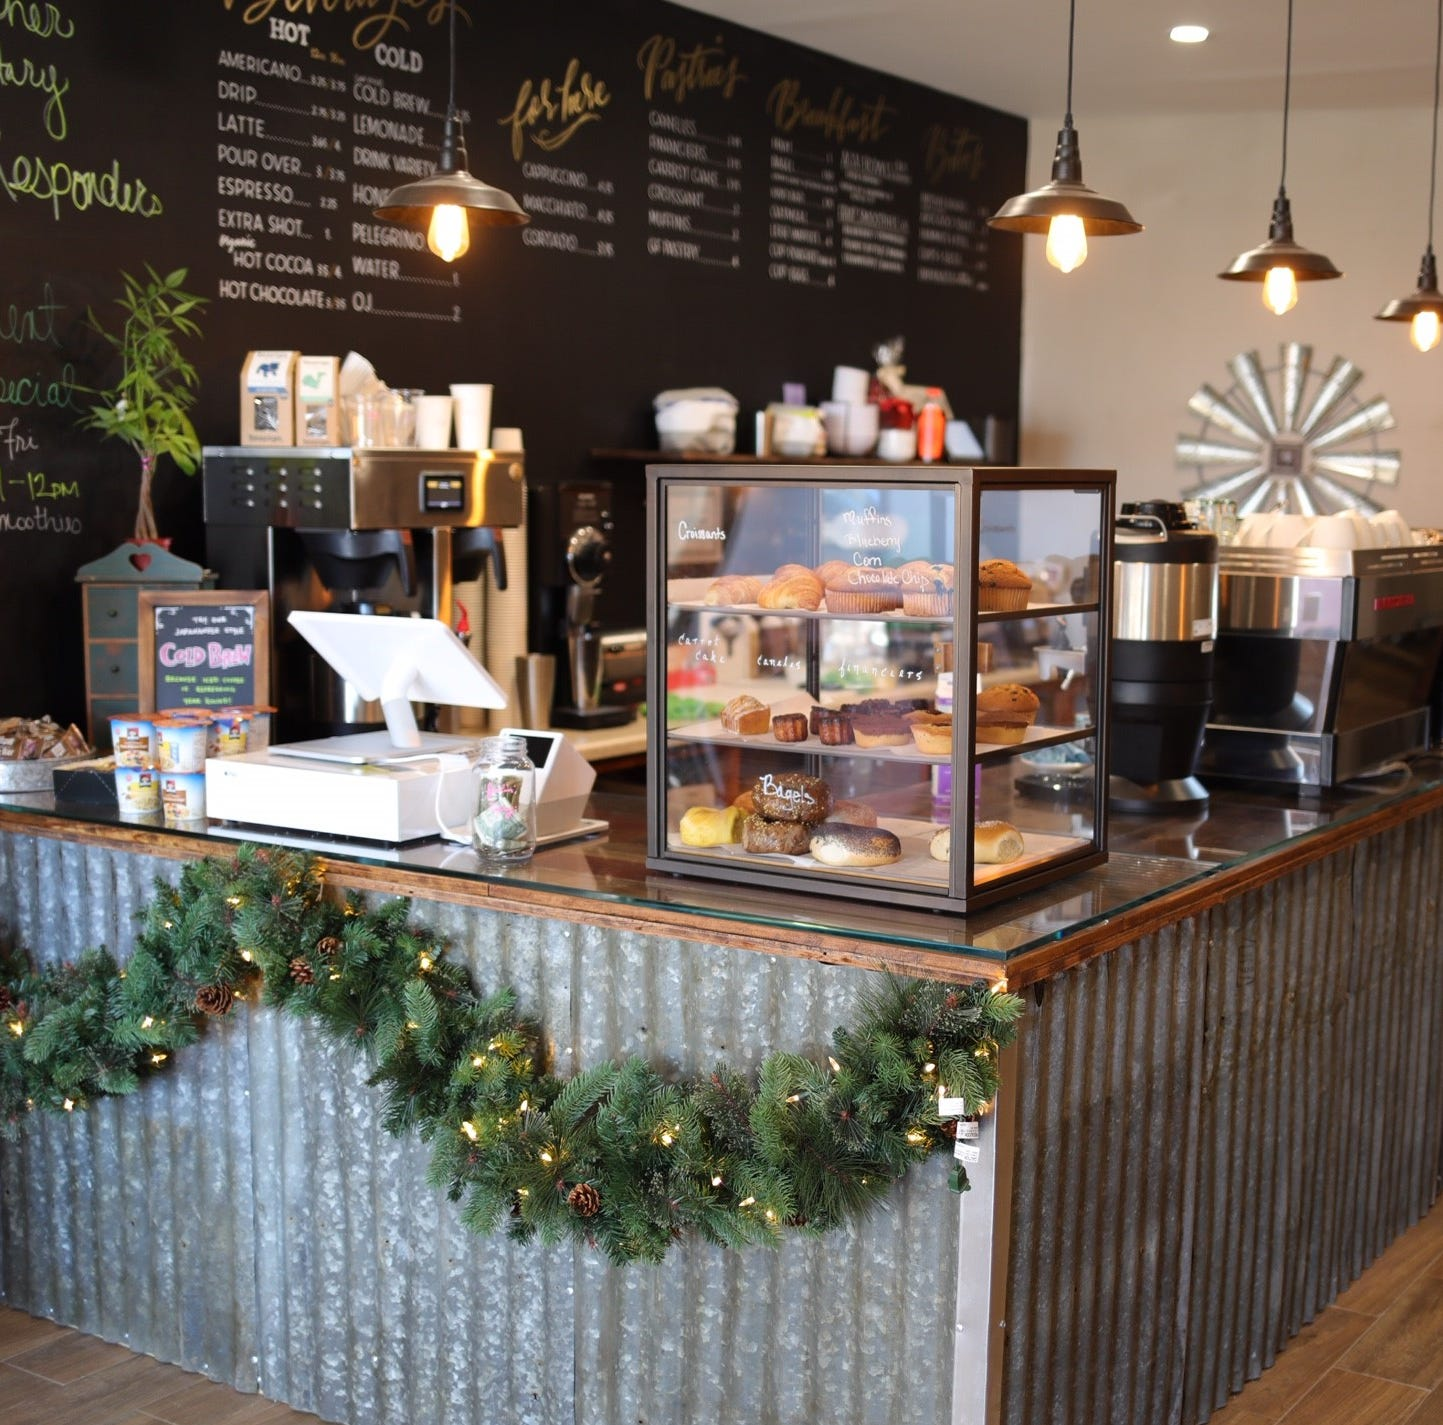 Now Open: Take-out or settle in at the cozy new cafe G.O.A.T. Coffeehouse in Lyndhurst